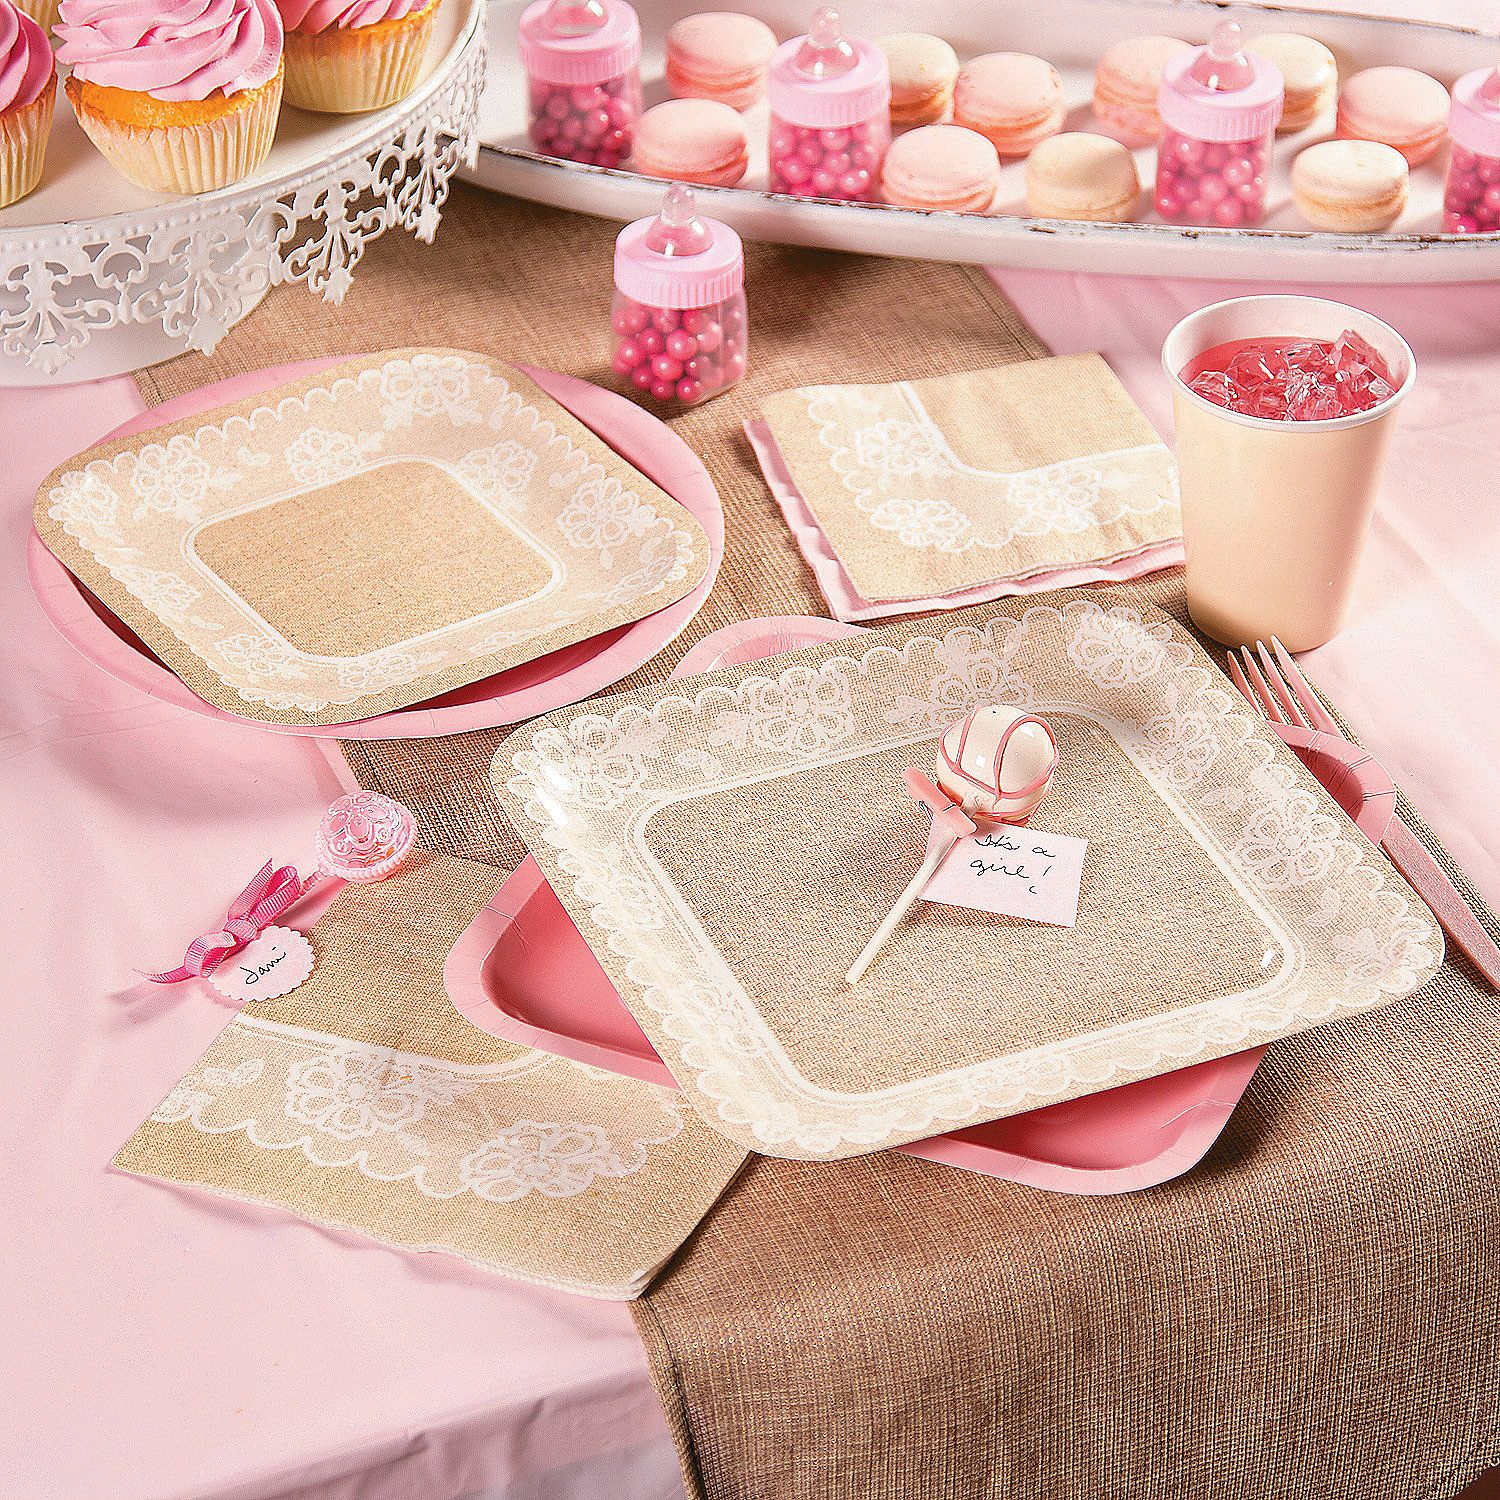 This trendy pink & burlap baby shower is so sweet The mom to be